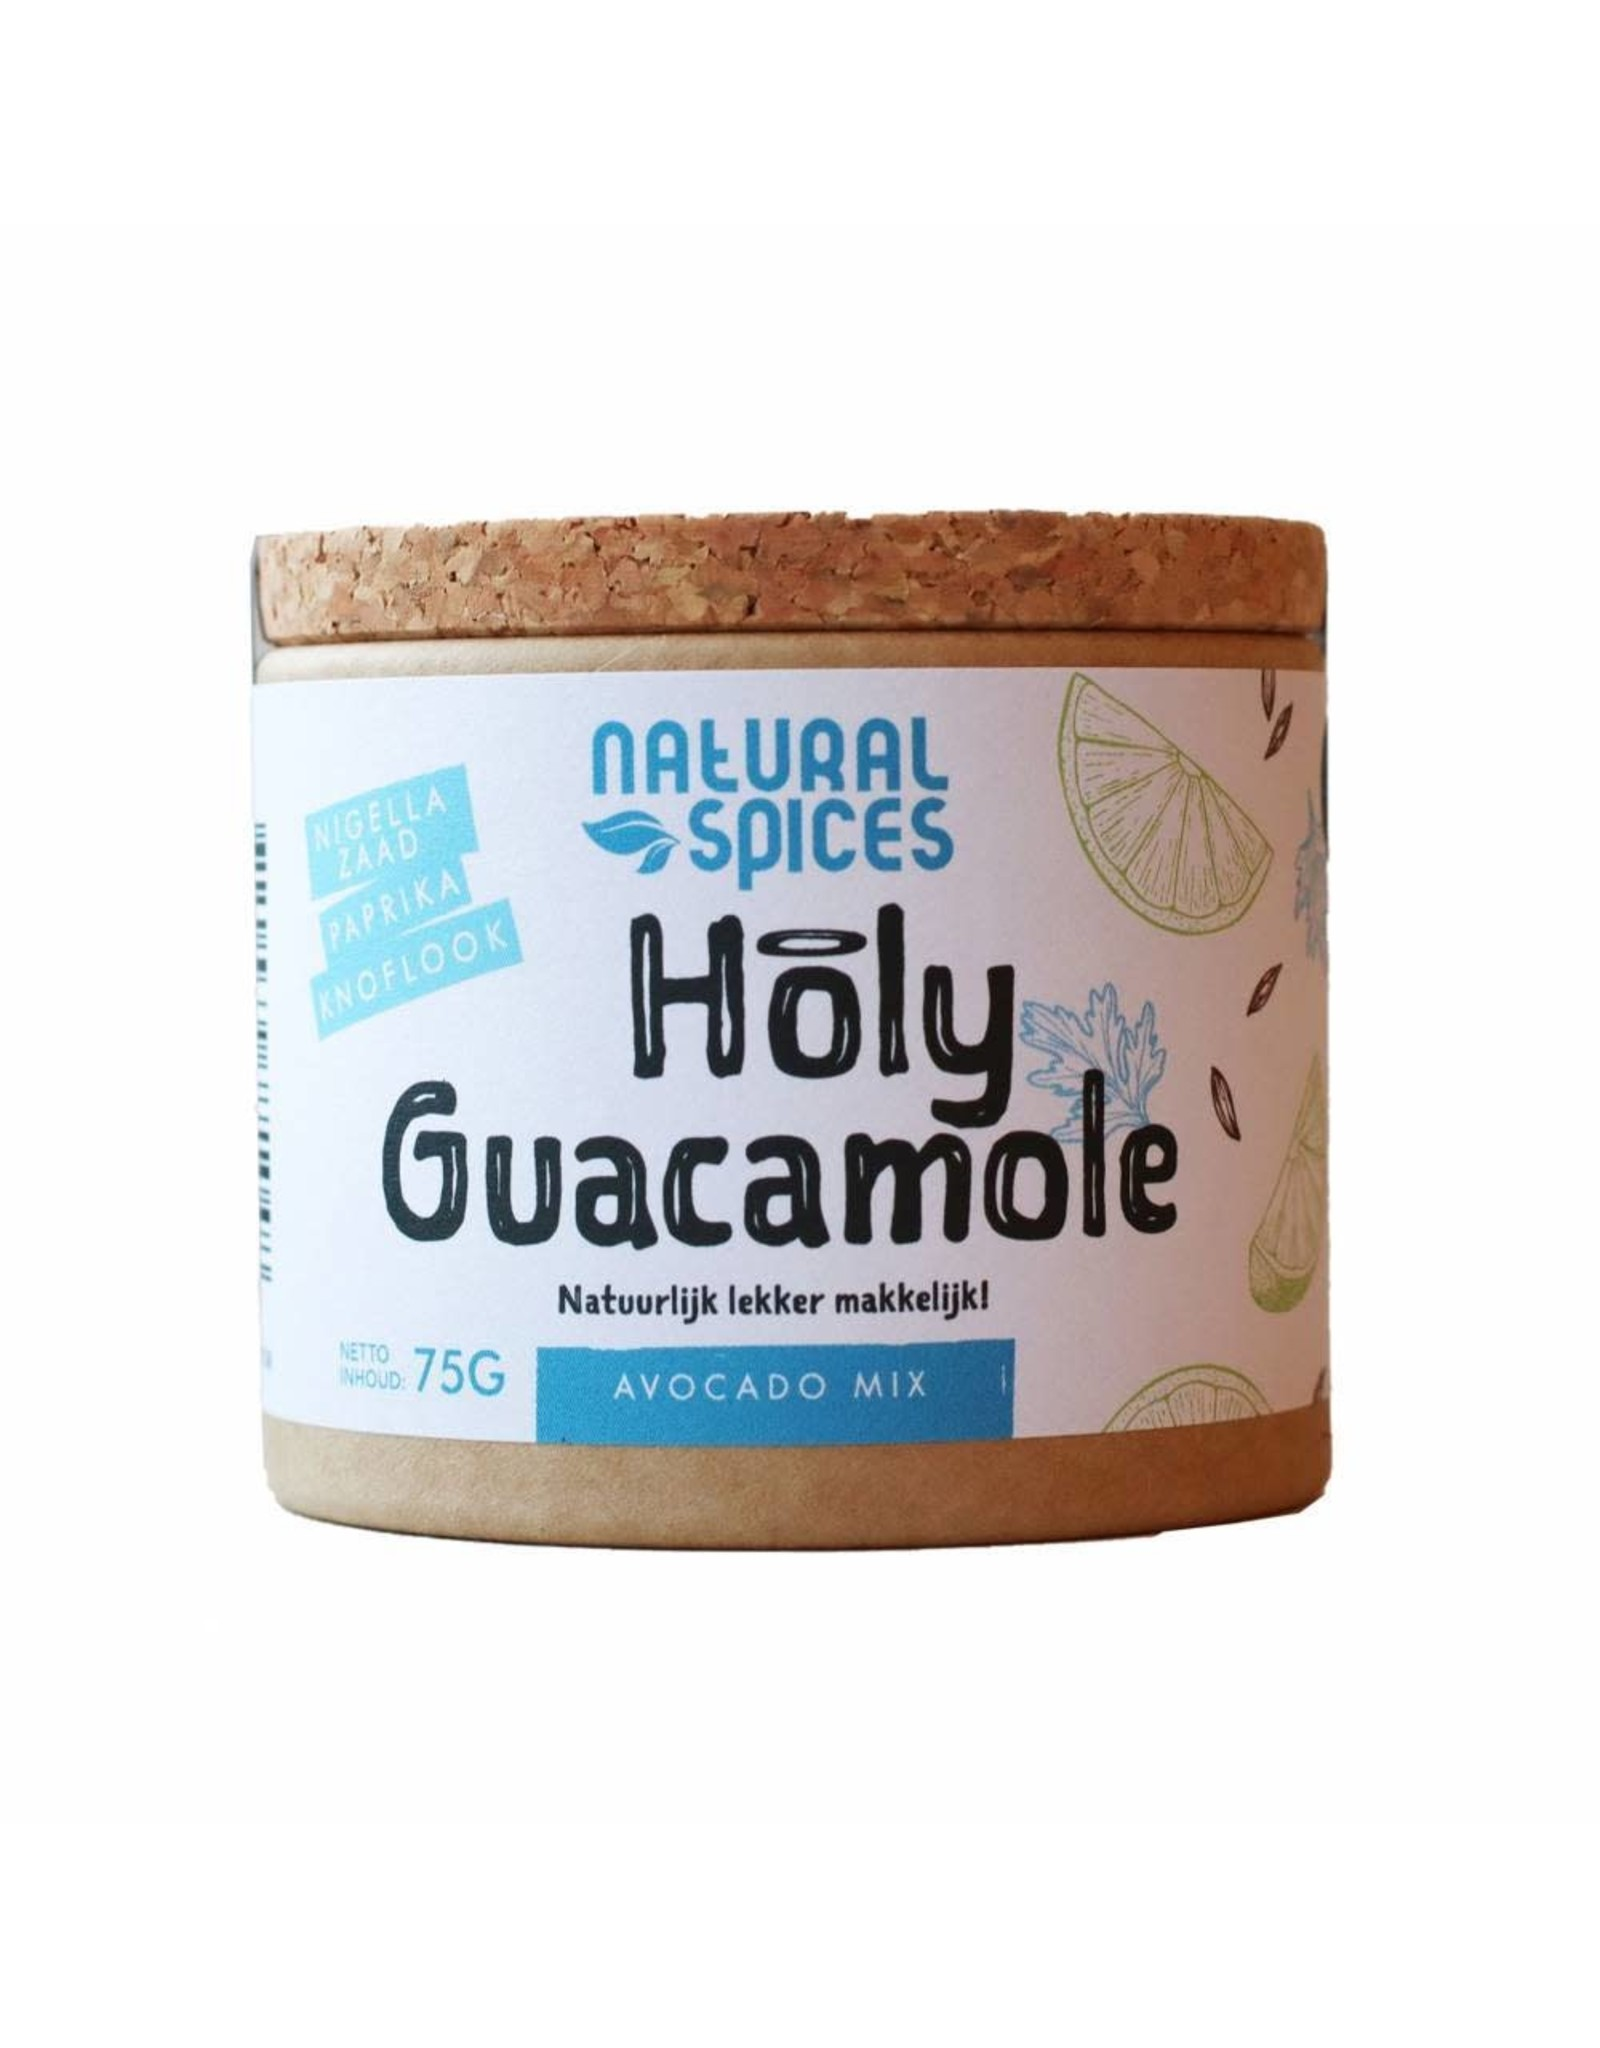 NATURAL SPICES NATURAL SPICES 2001 75GRAM HOLY GUACAMOLE